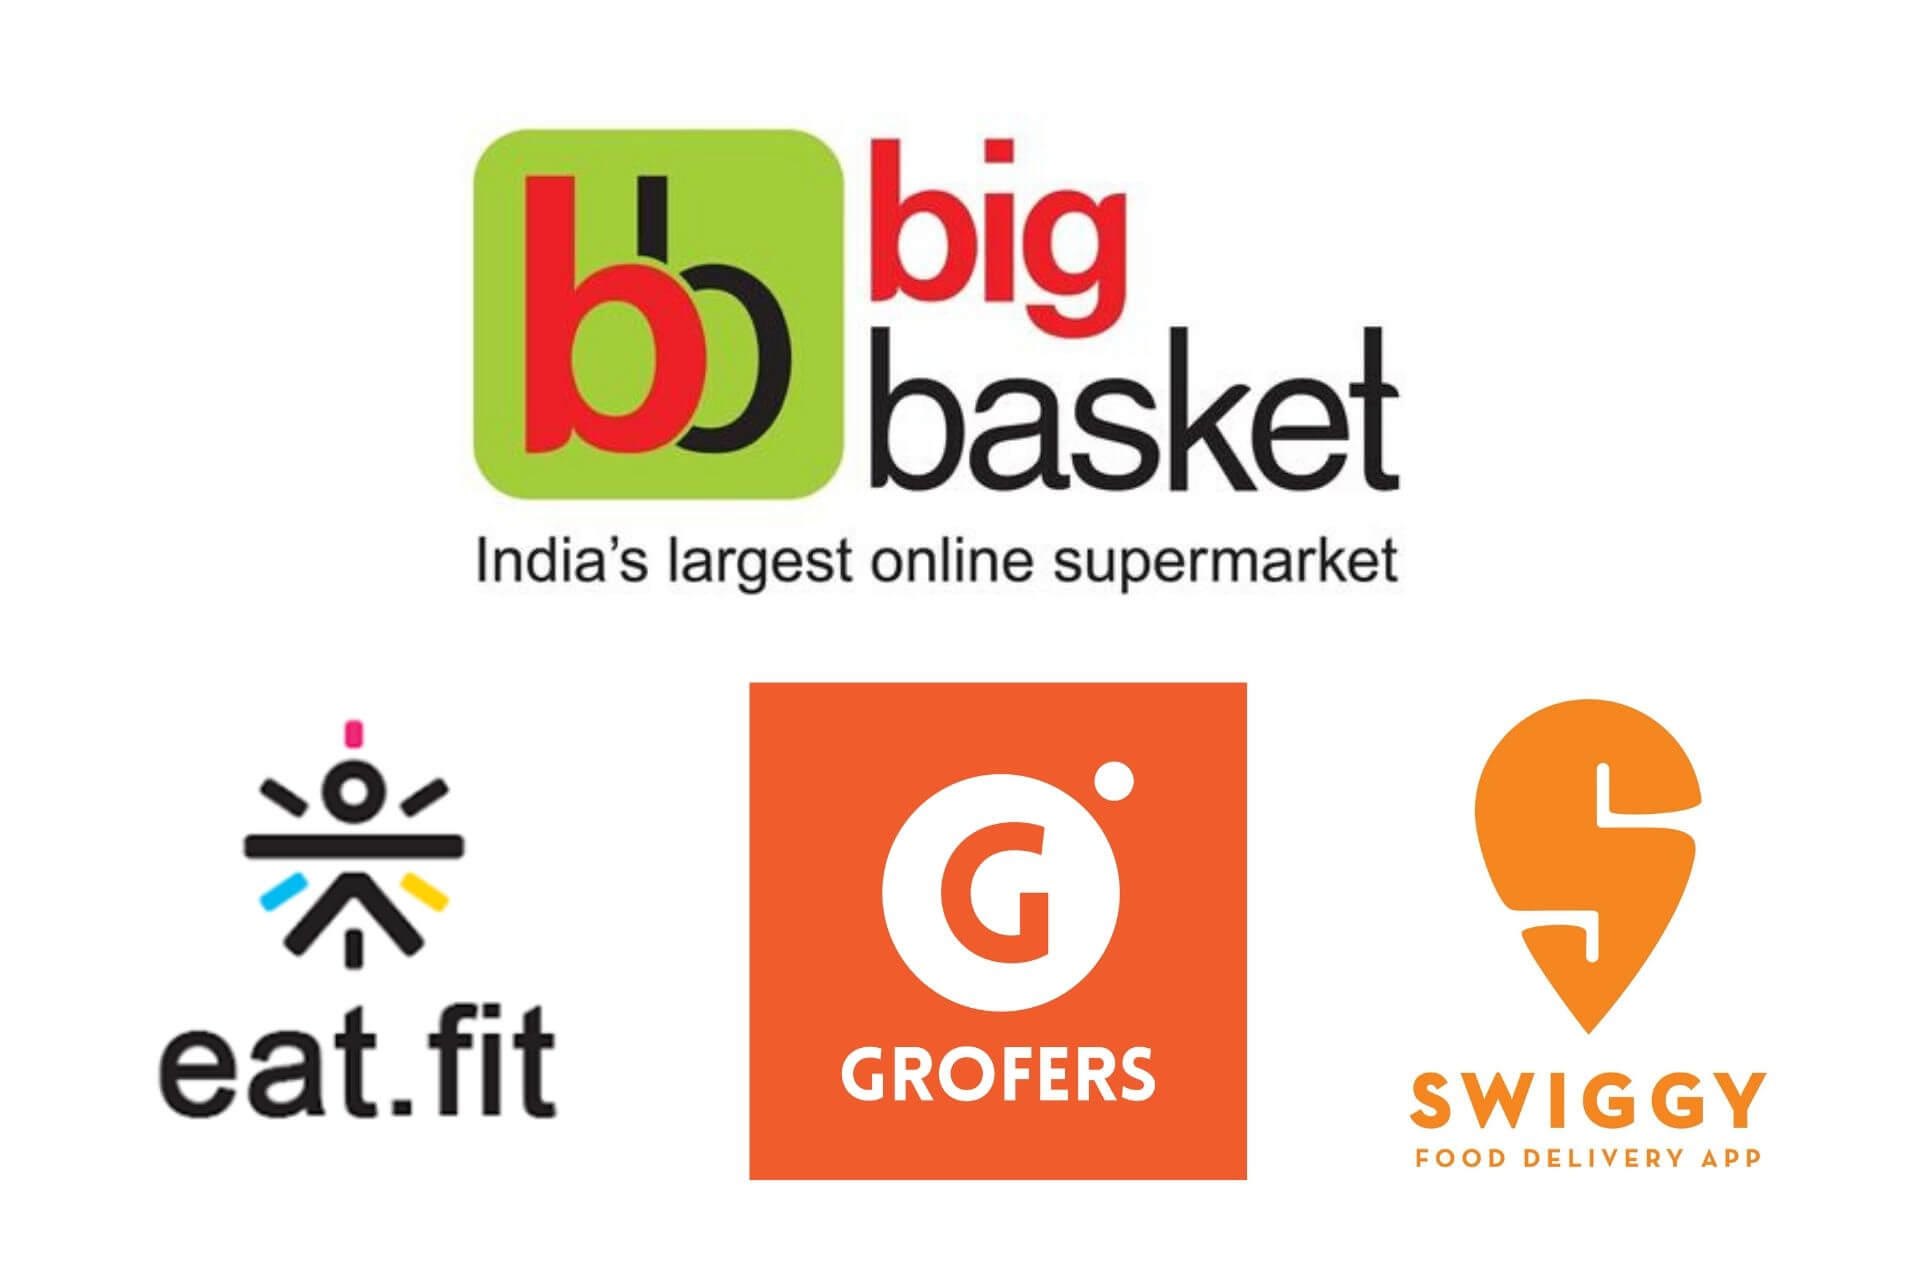 Big basket groffers eat fitOnline Grocery Market Overview & Future in India (2020)